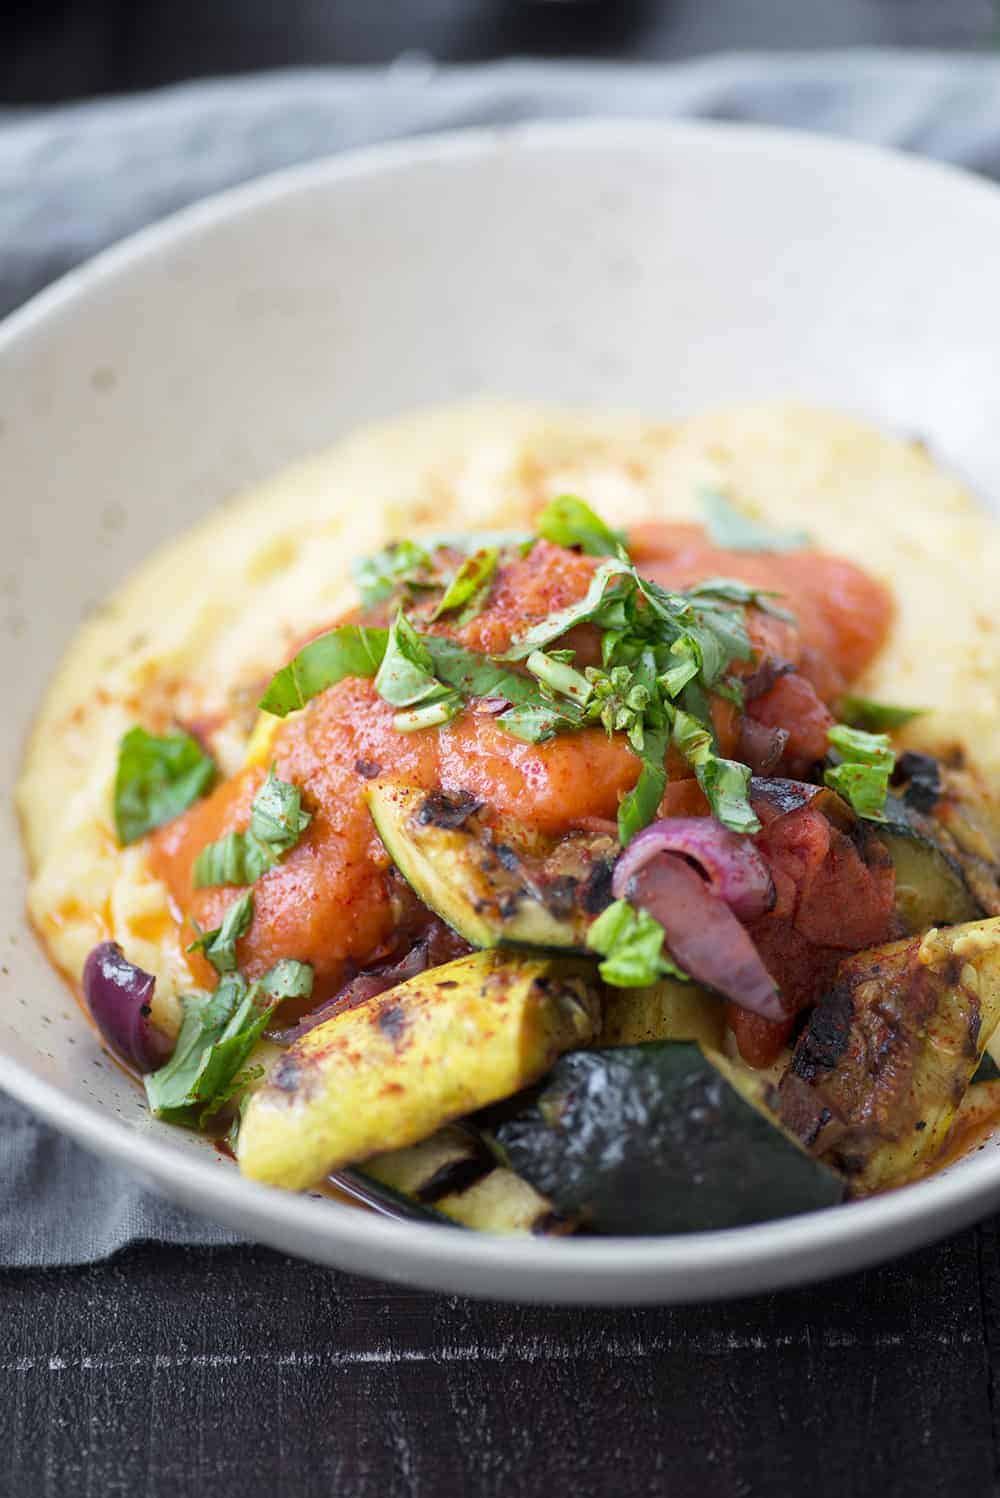 creamy polenta with grilled summer vegetables and homemade roasted red pepper tomato sauce